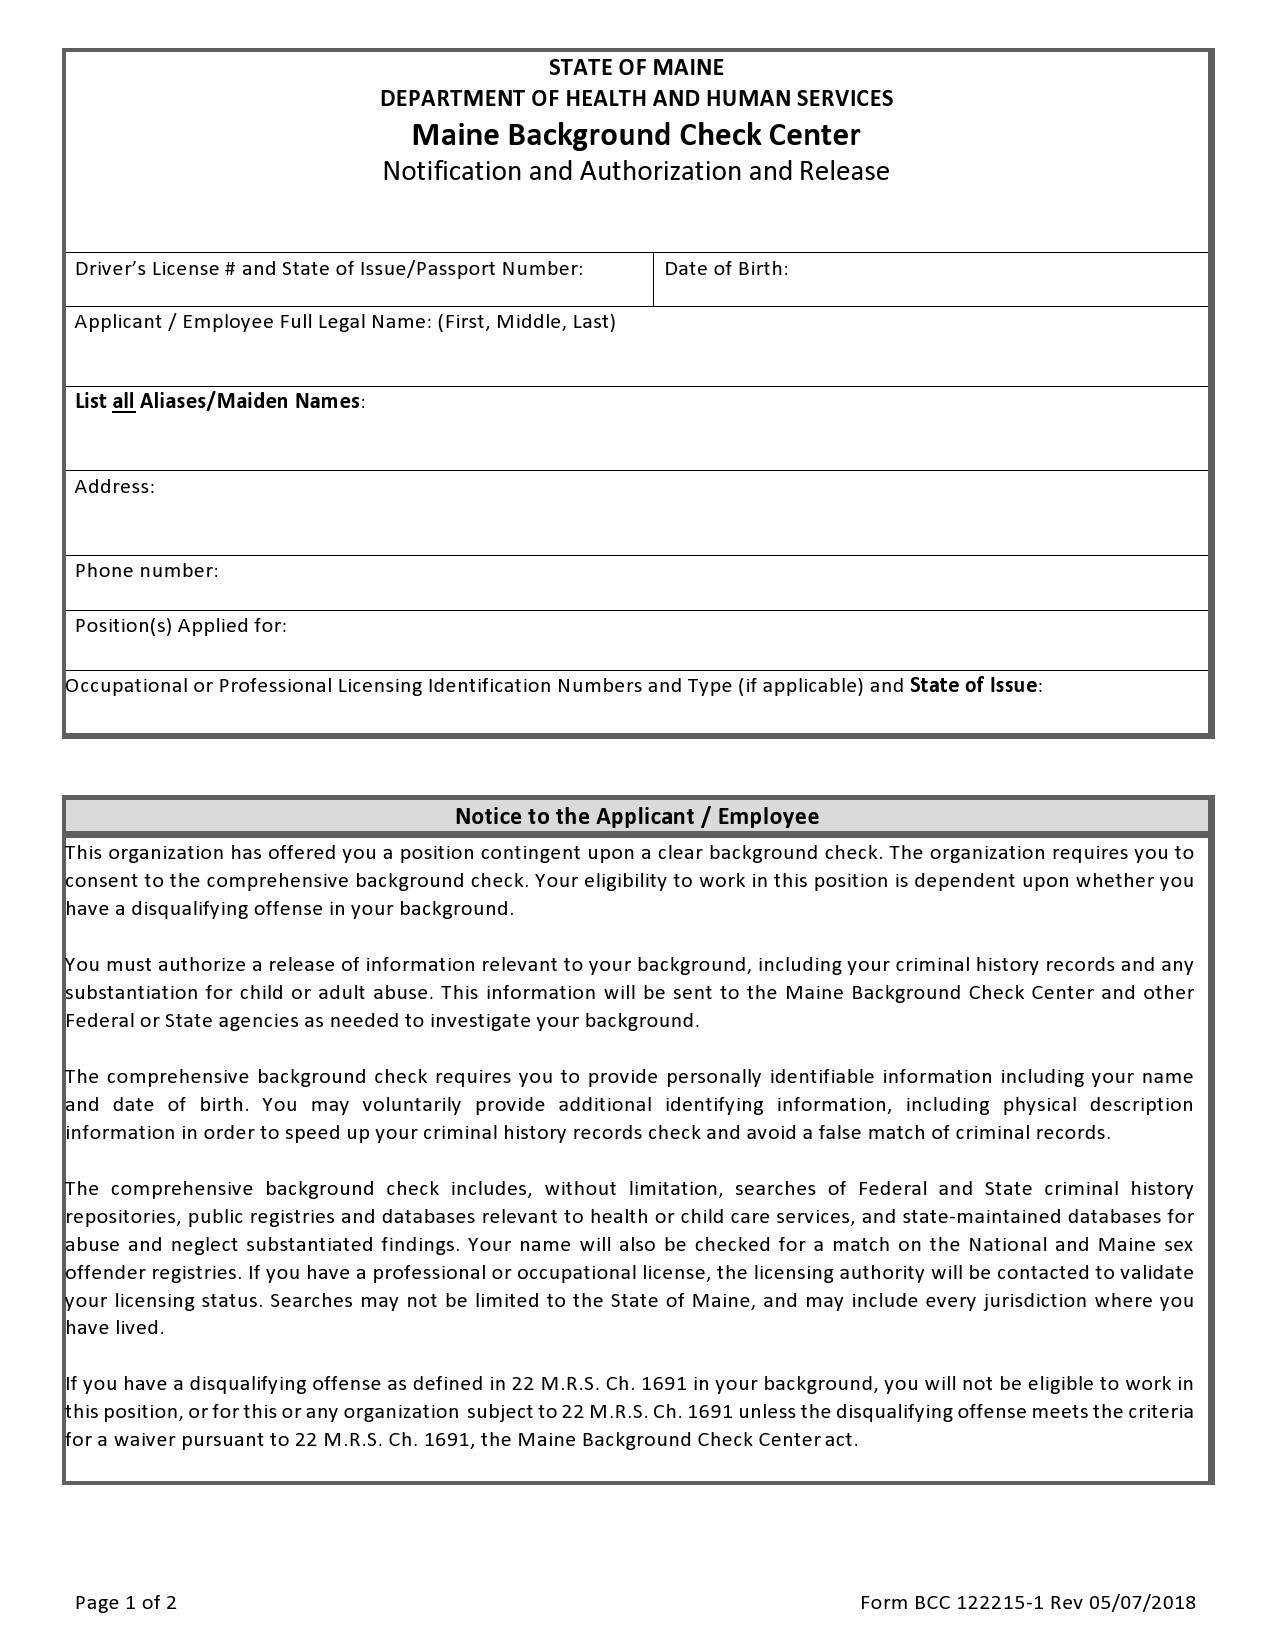 Free background check form 45